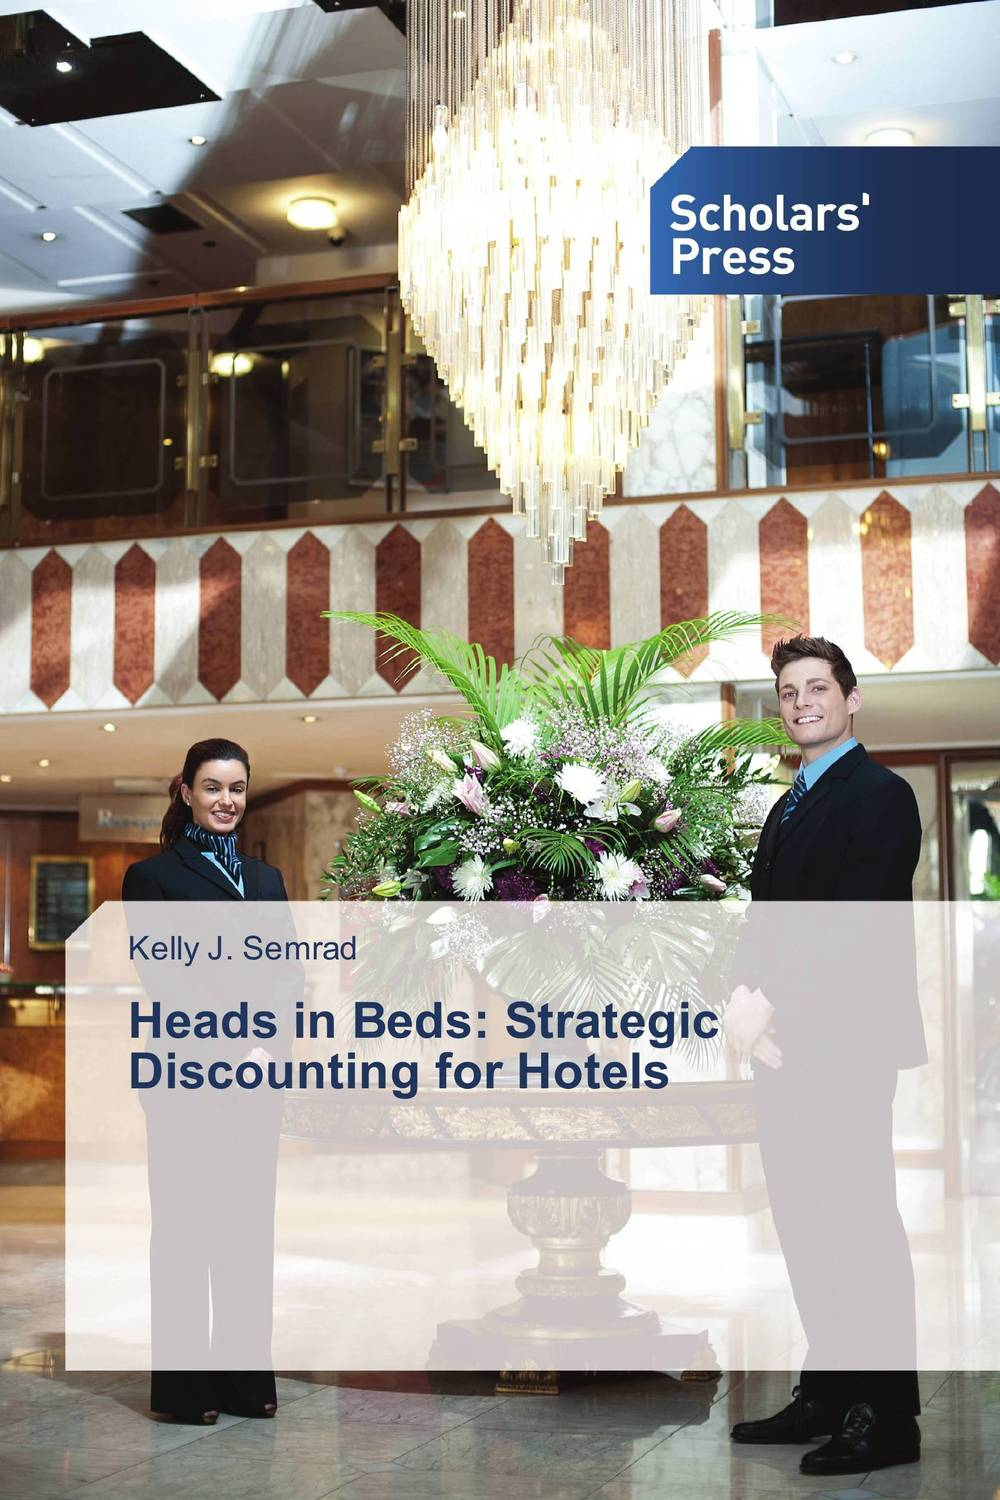 Heads in Beds: Strategic Discounting for Hotels